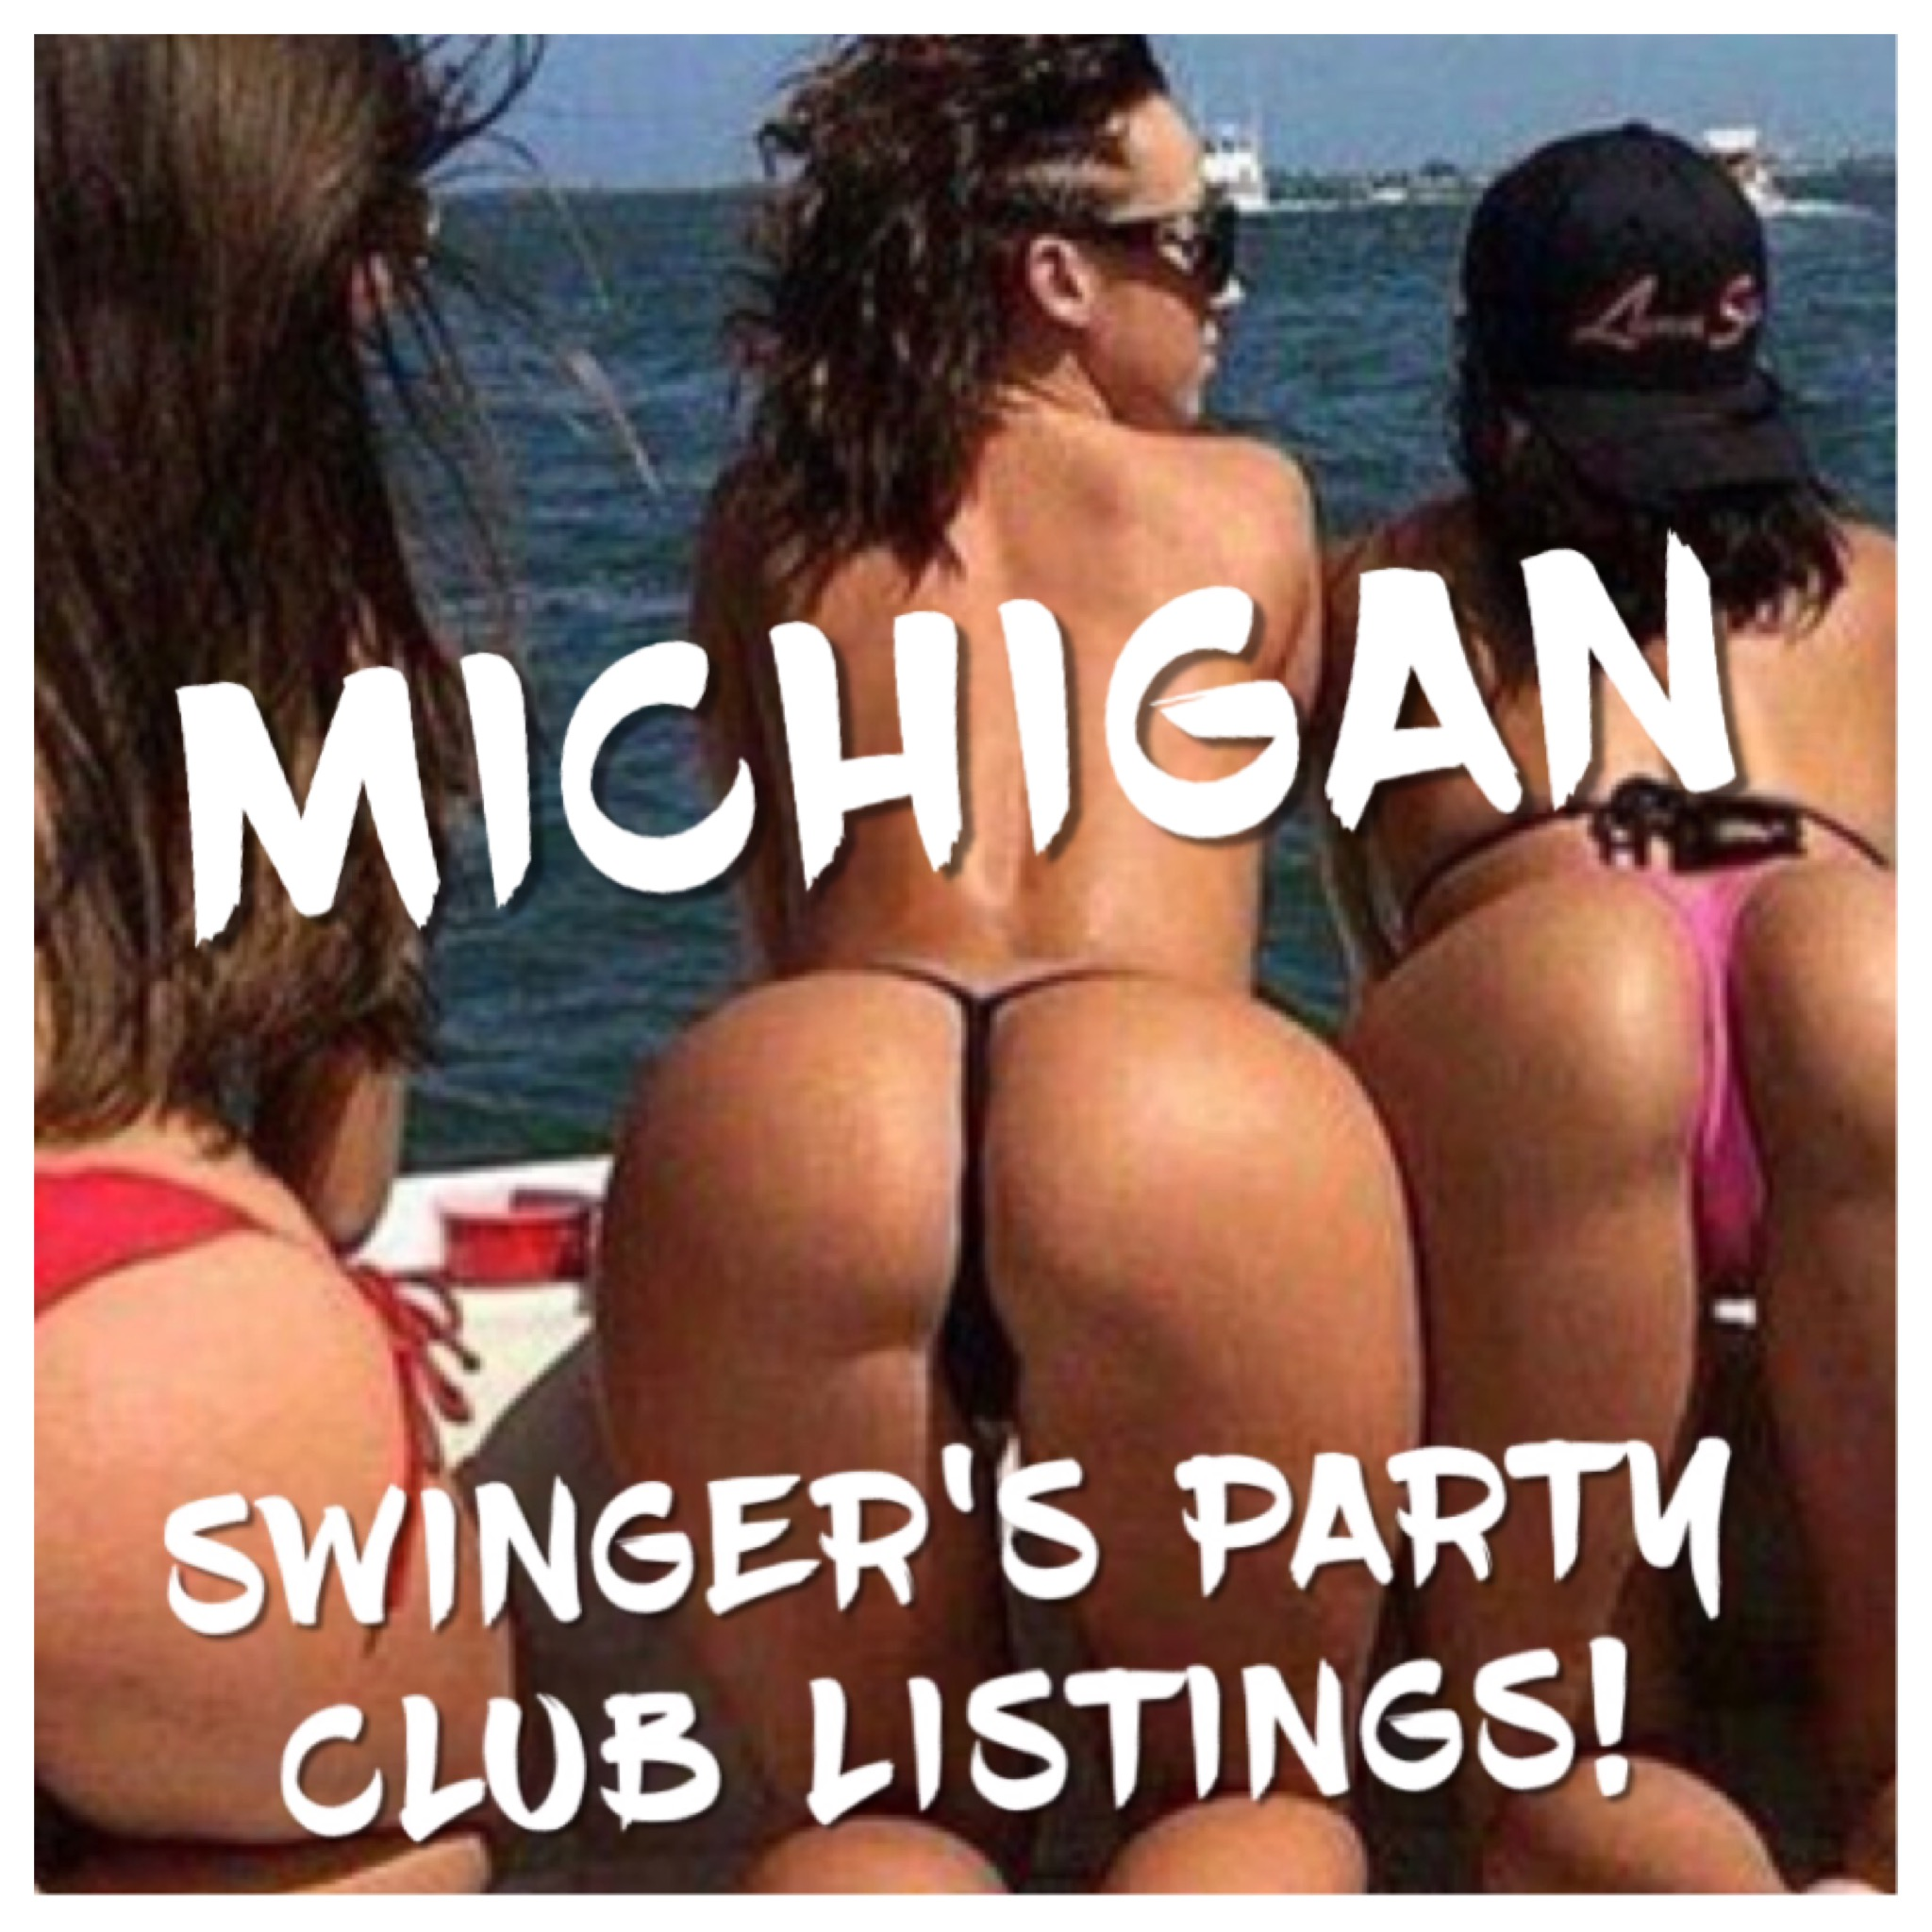 Michgian swinger clubs